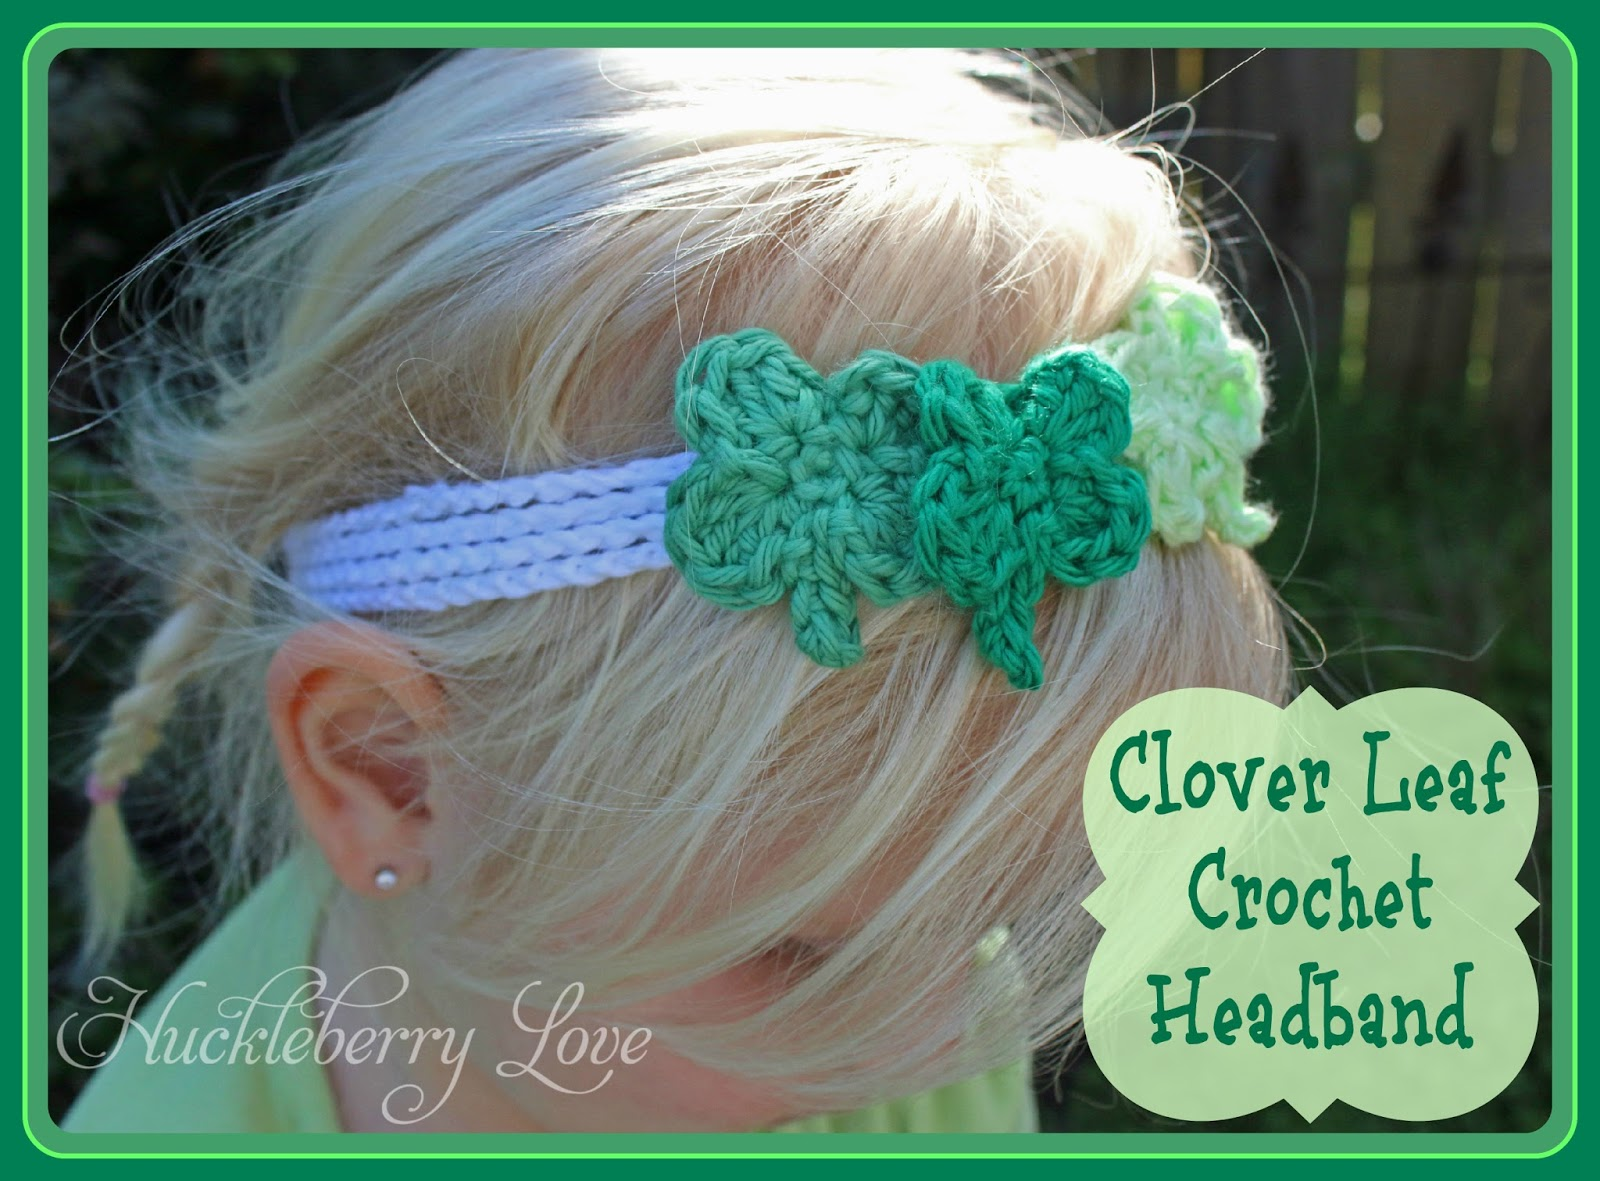 Huckleberry love clover leaf crochet headband tutorial clover leaf crochet headband tutorial baditri Image collections